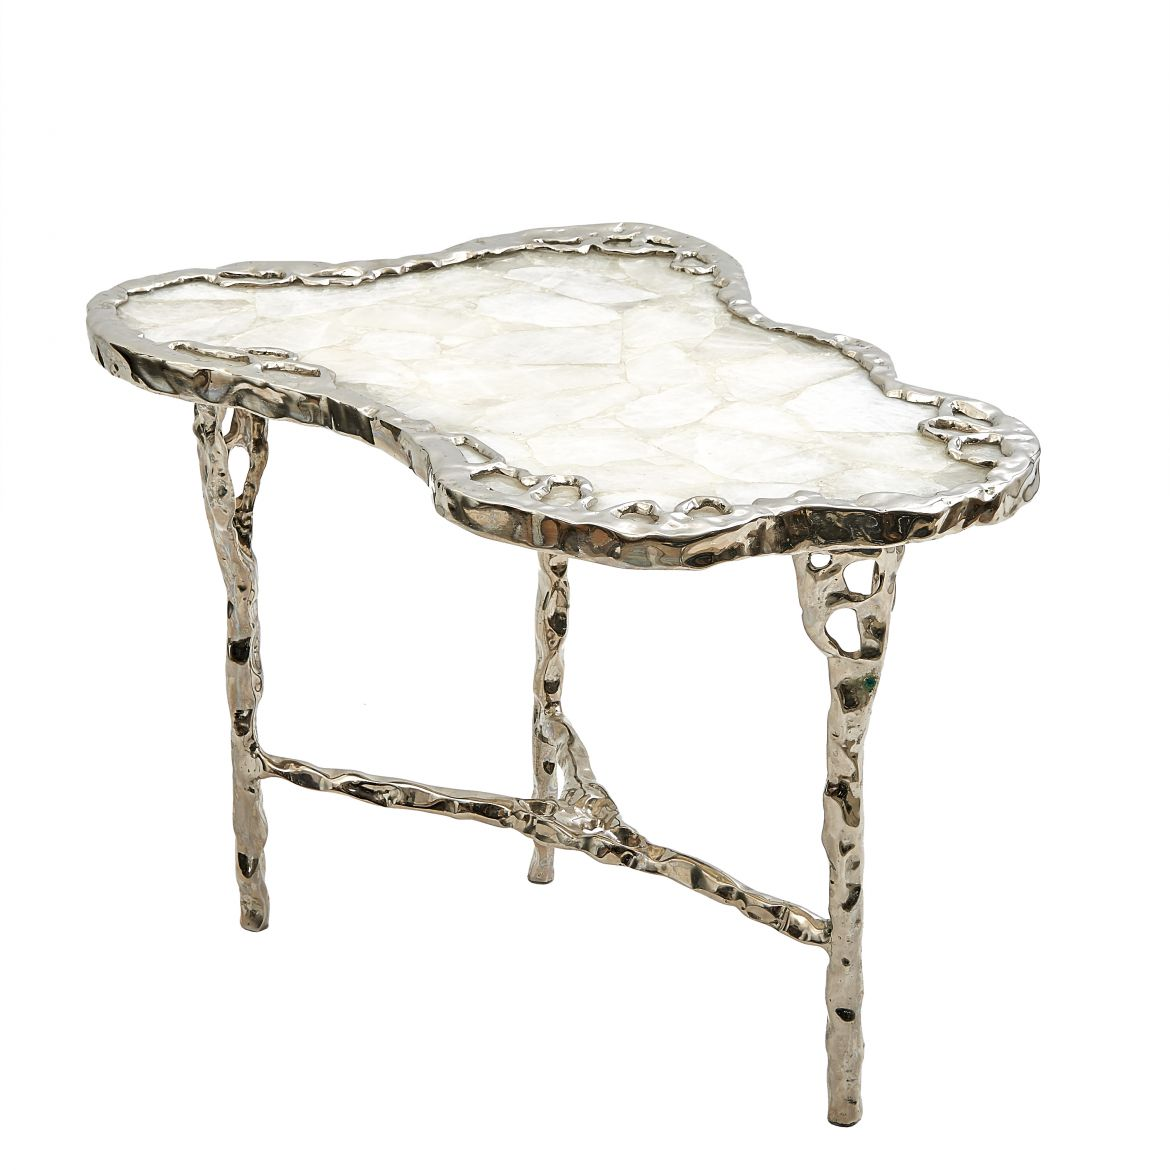 Arriau Biomorphic Rock Crystal Table